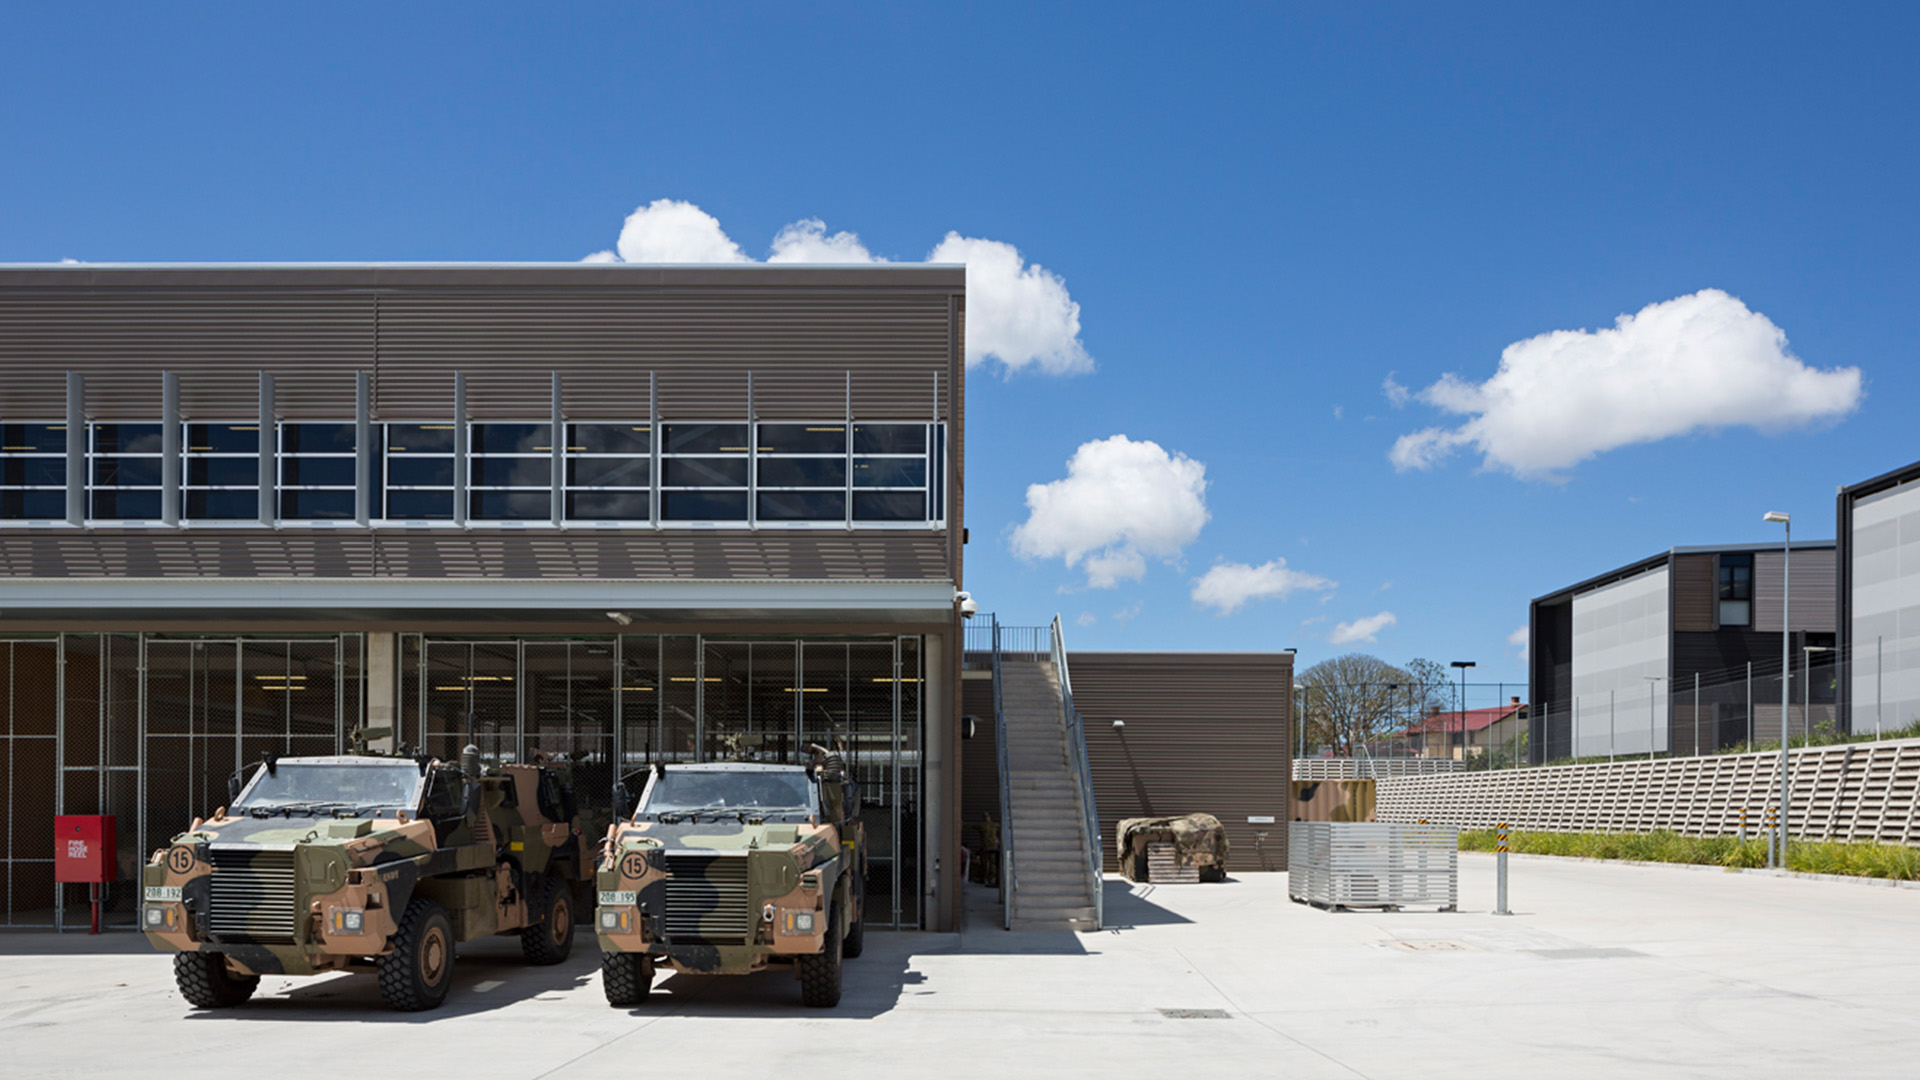 Enoggera Barracks trucks parked